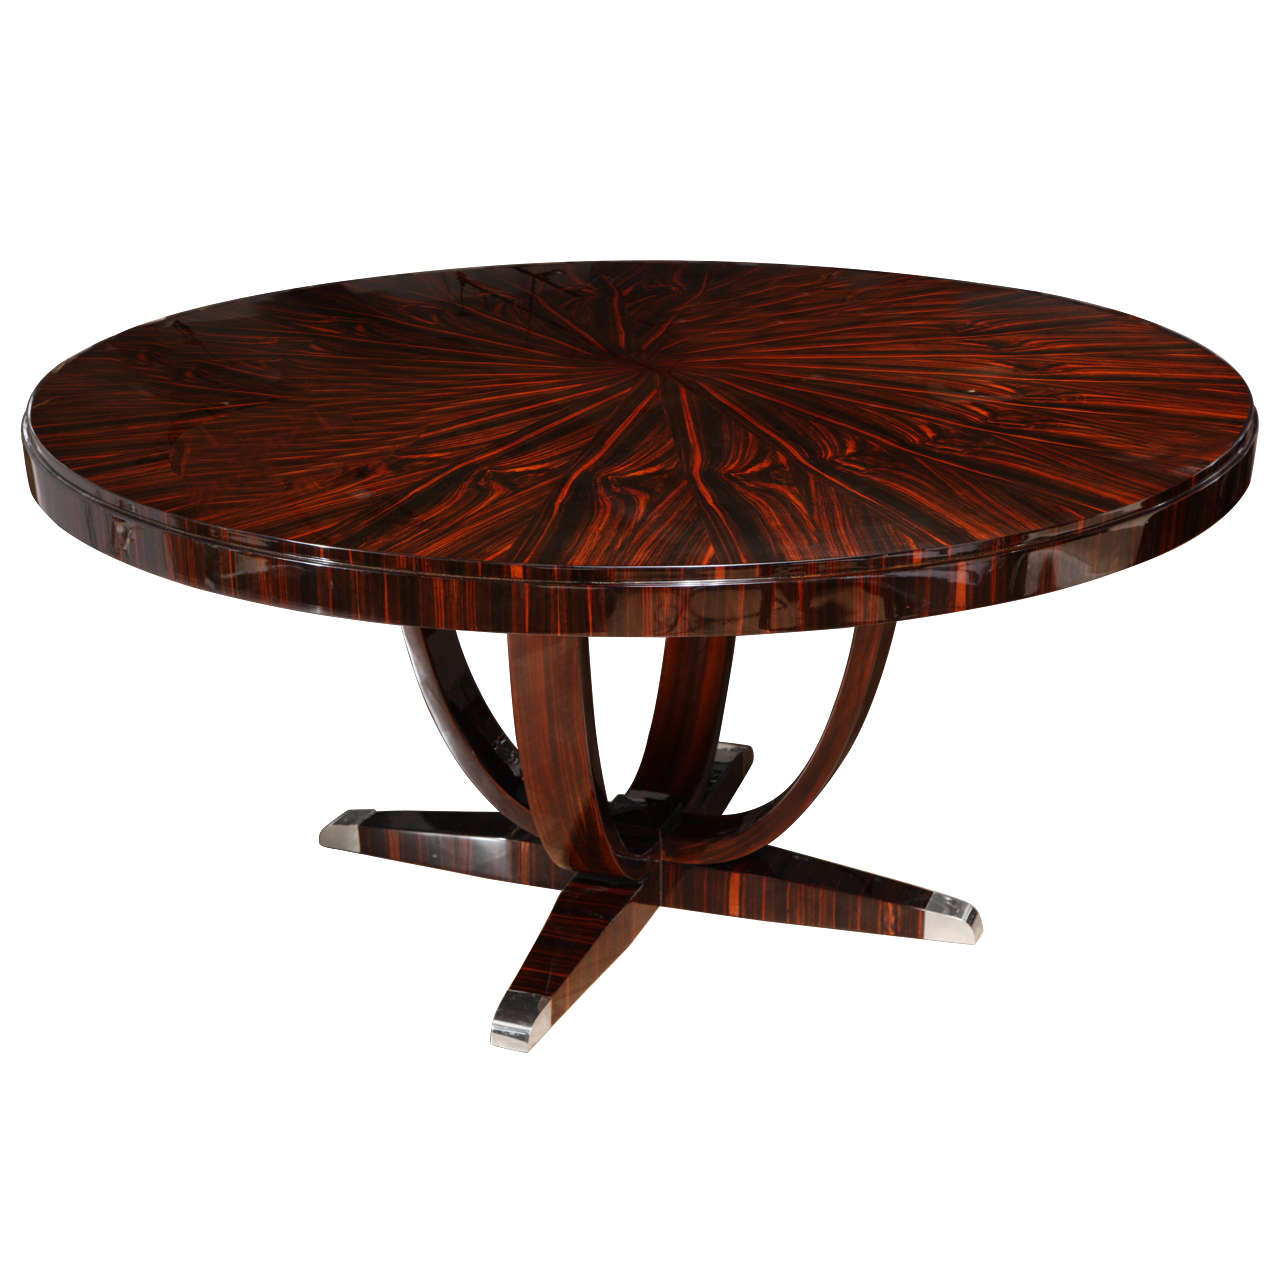 superb art deco round dining table at 1stdibs. Black Bedroom Furniture Sets. Home Design Ideas